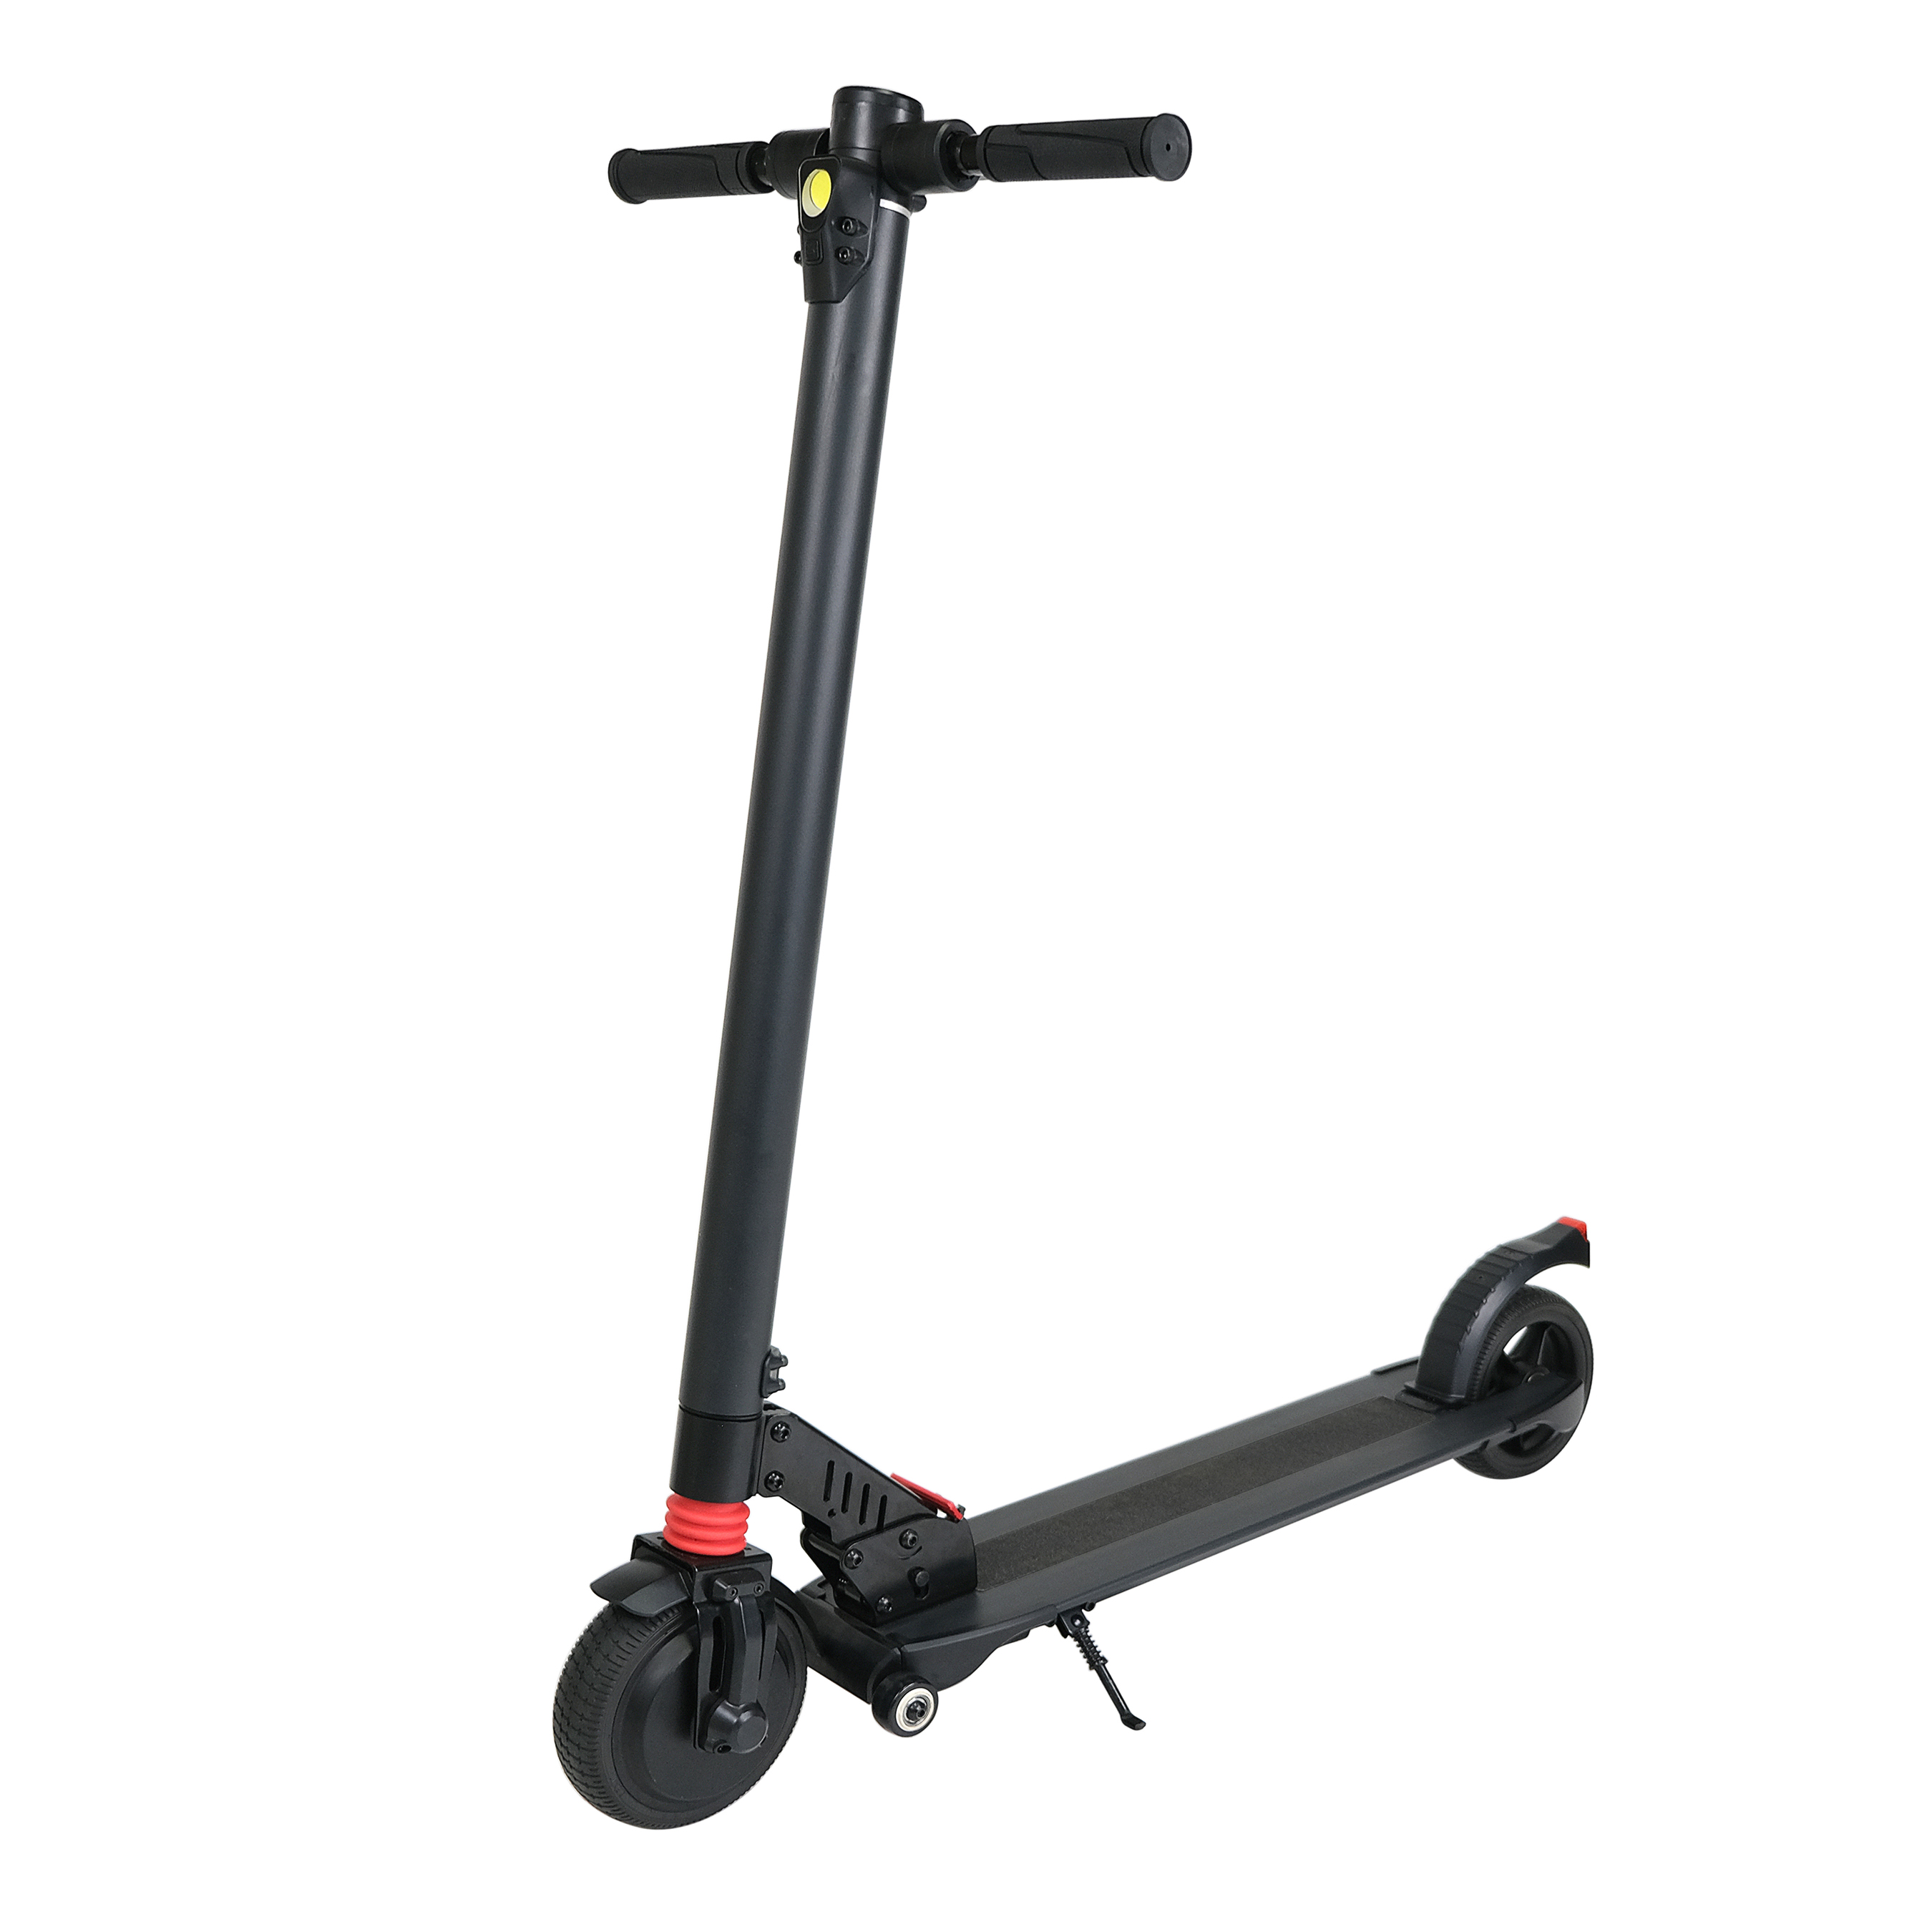 24V 270w about 9.6-25KM/h Range Alloy+ABS+PC Foldable Electric Scooter